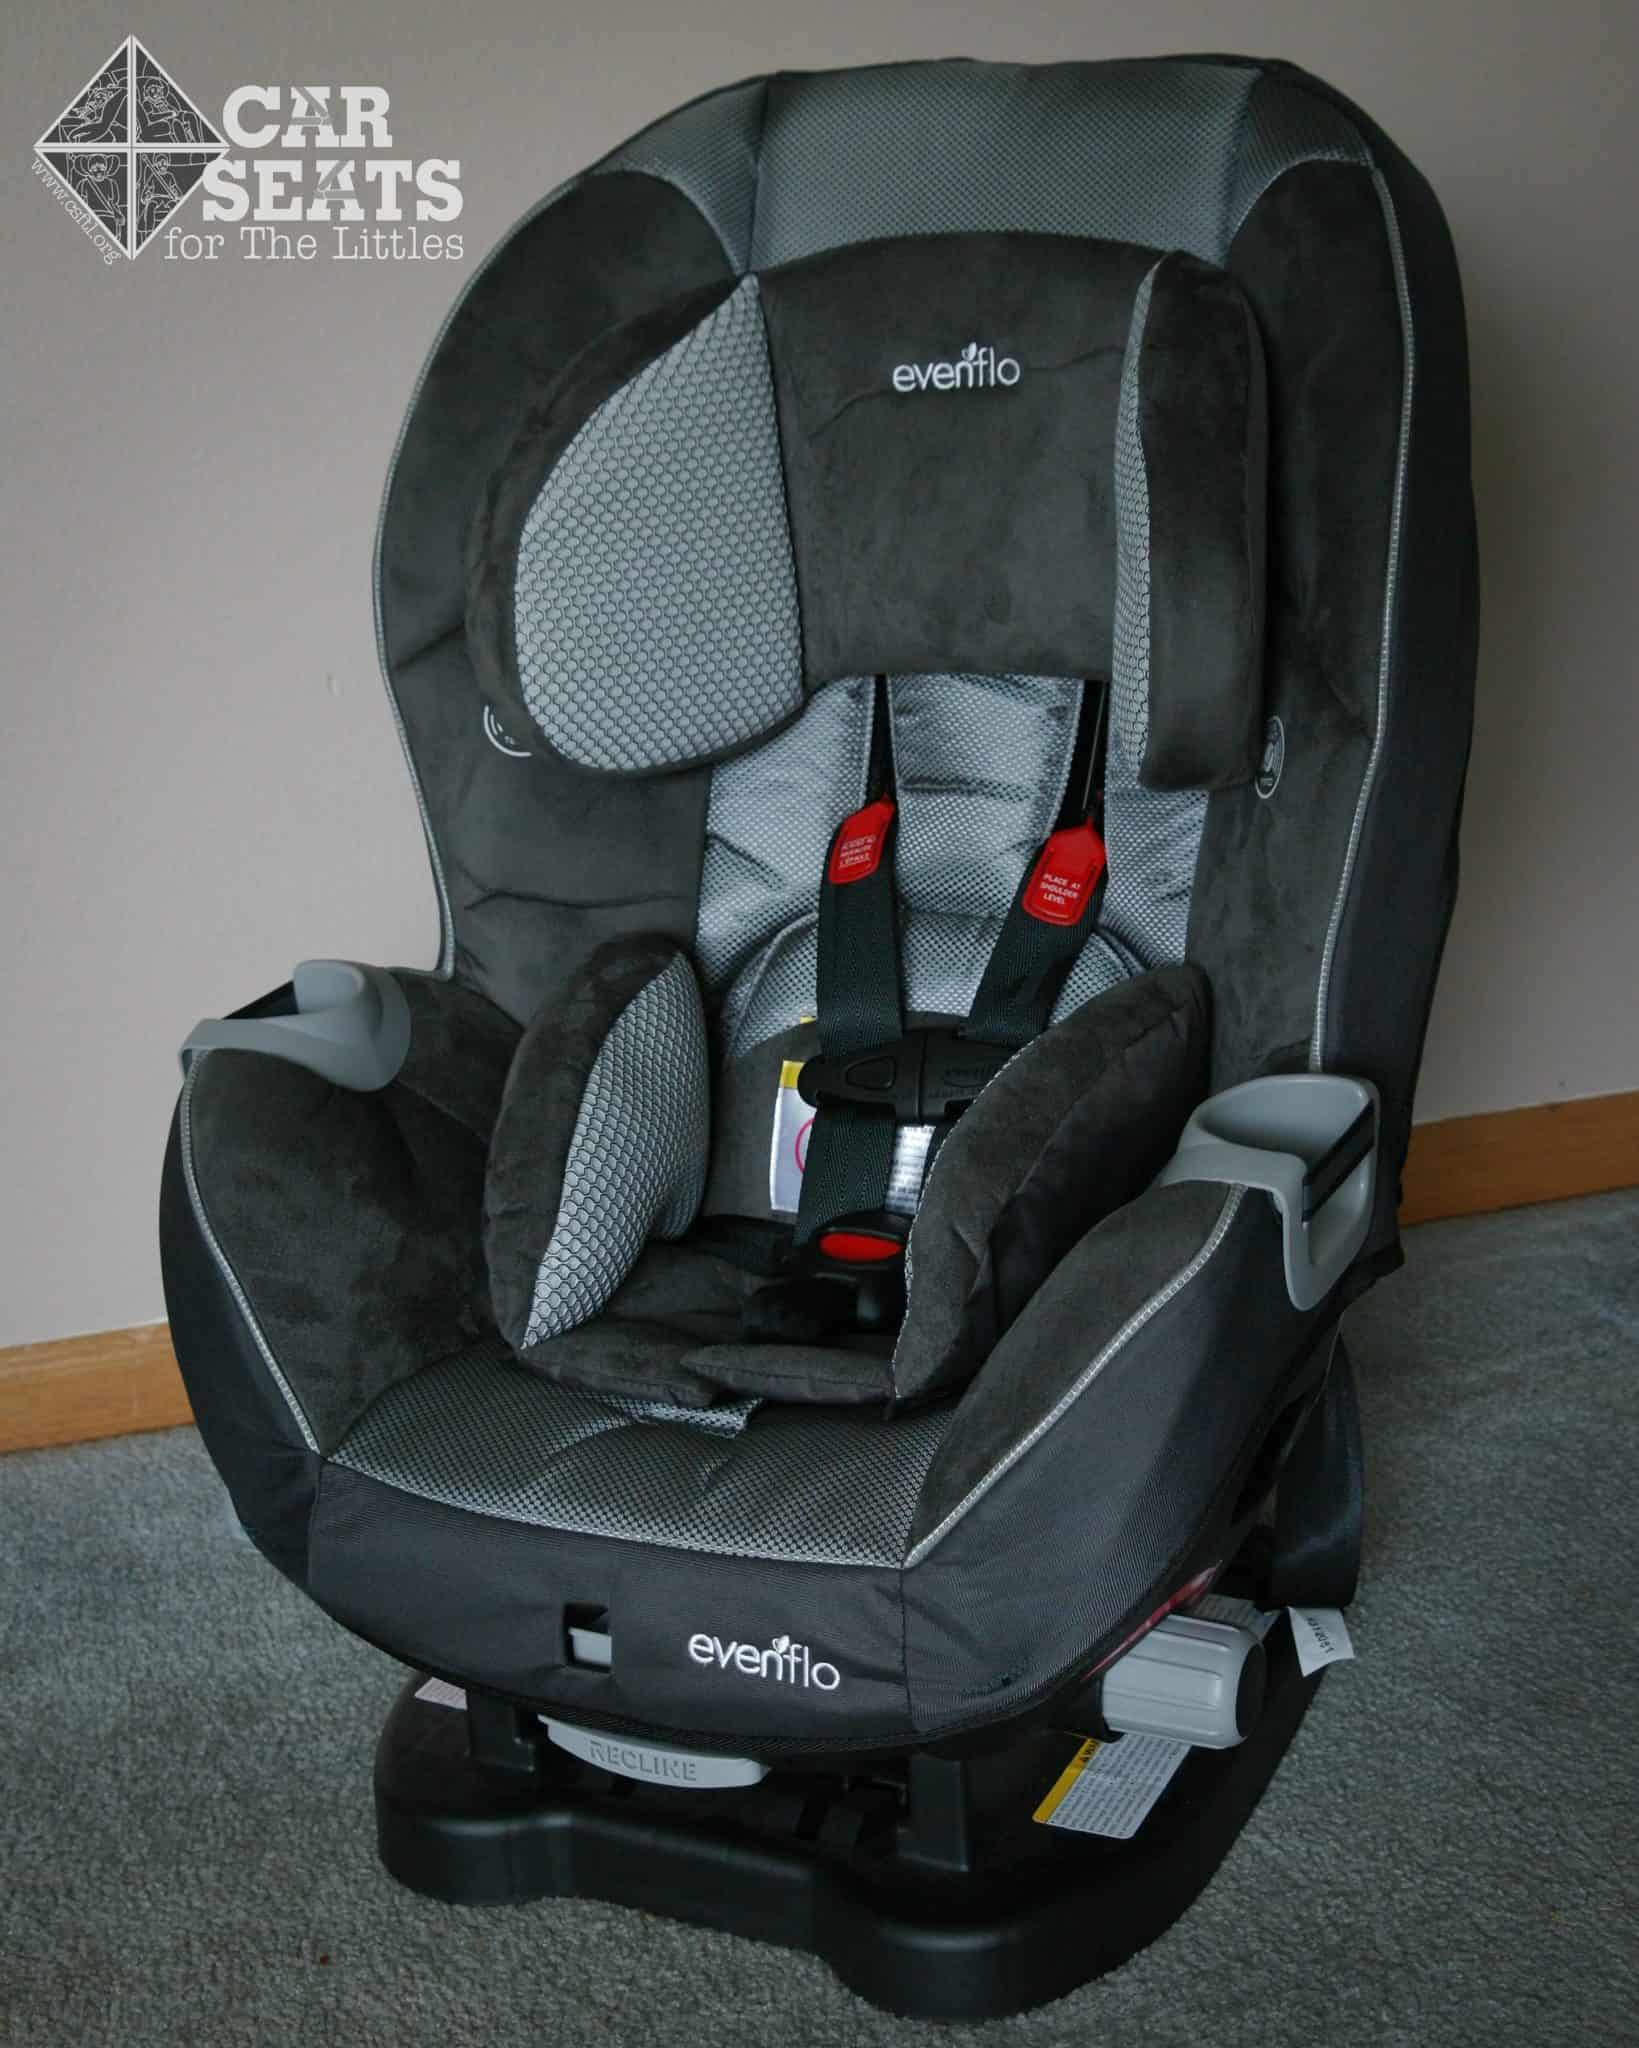 evenflo triumph review car seats for the littles. Black Bedroom Furniture Sets. Home Design Ideas